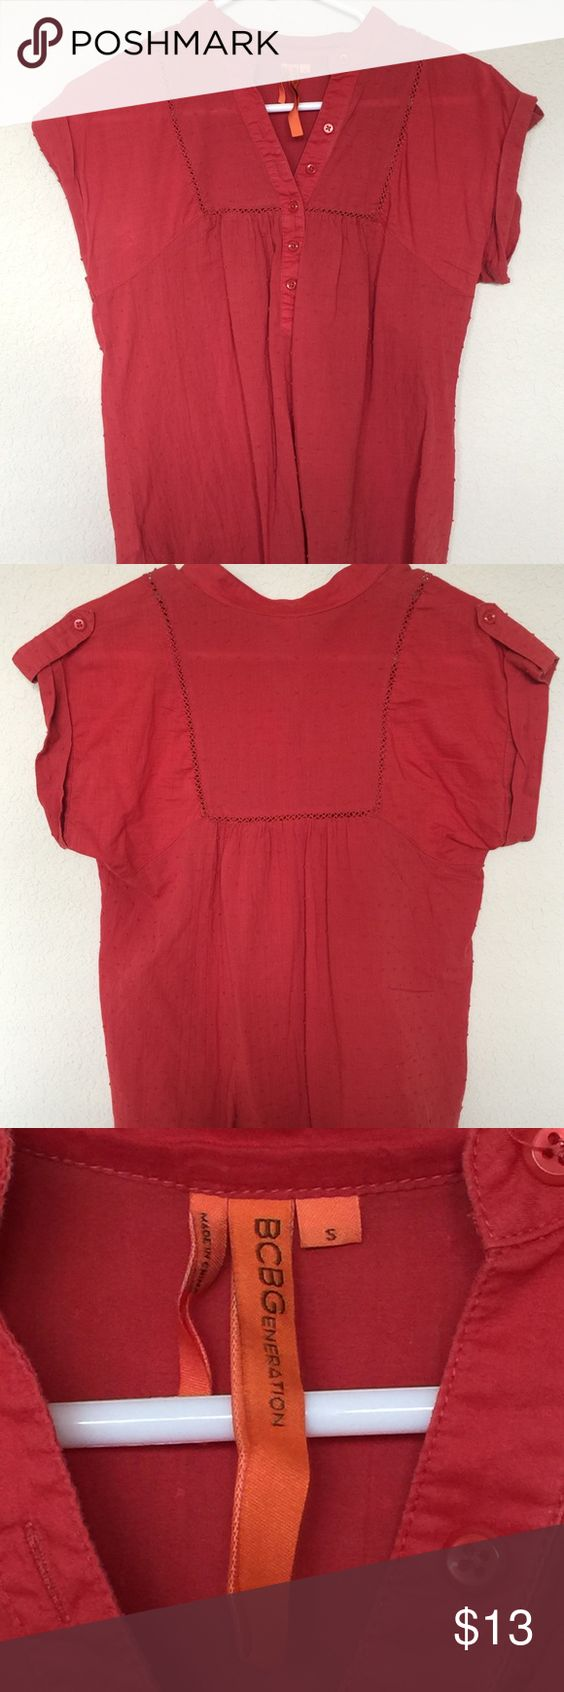 BCBGeneration Top BCBGeneration top in a reddish/coral color. Short sleeve with bottoms down the front. Fun top for spring and summer! Used but in good condition. Purchased at BCBG store in Kansas City. Message if you have any questions! BCBGeneration Tops Tees - Short Sleeve